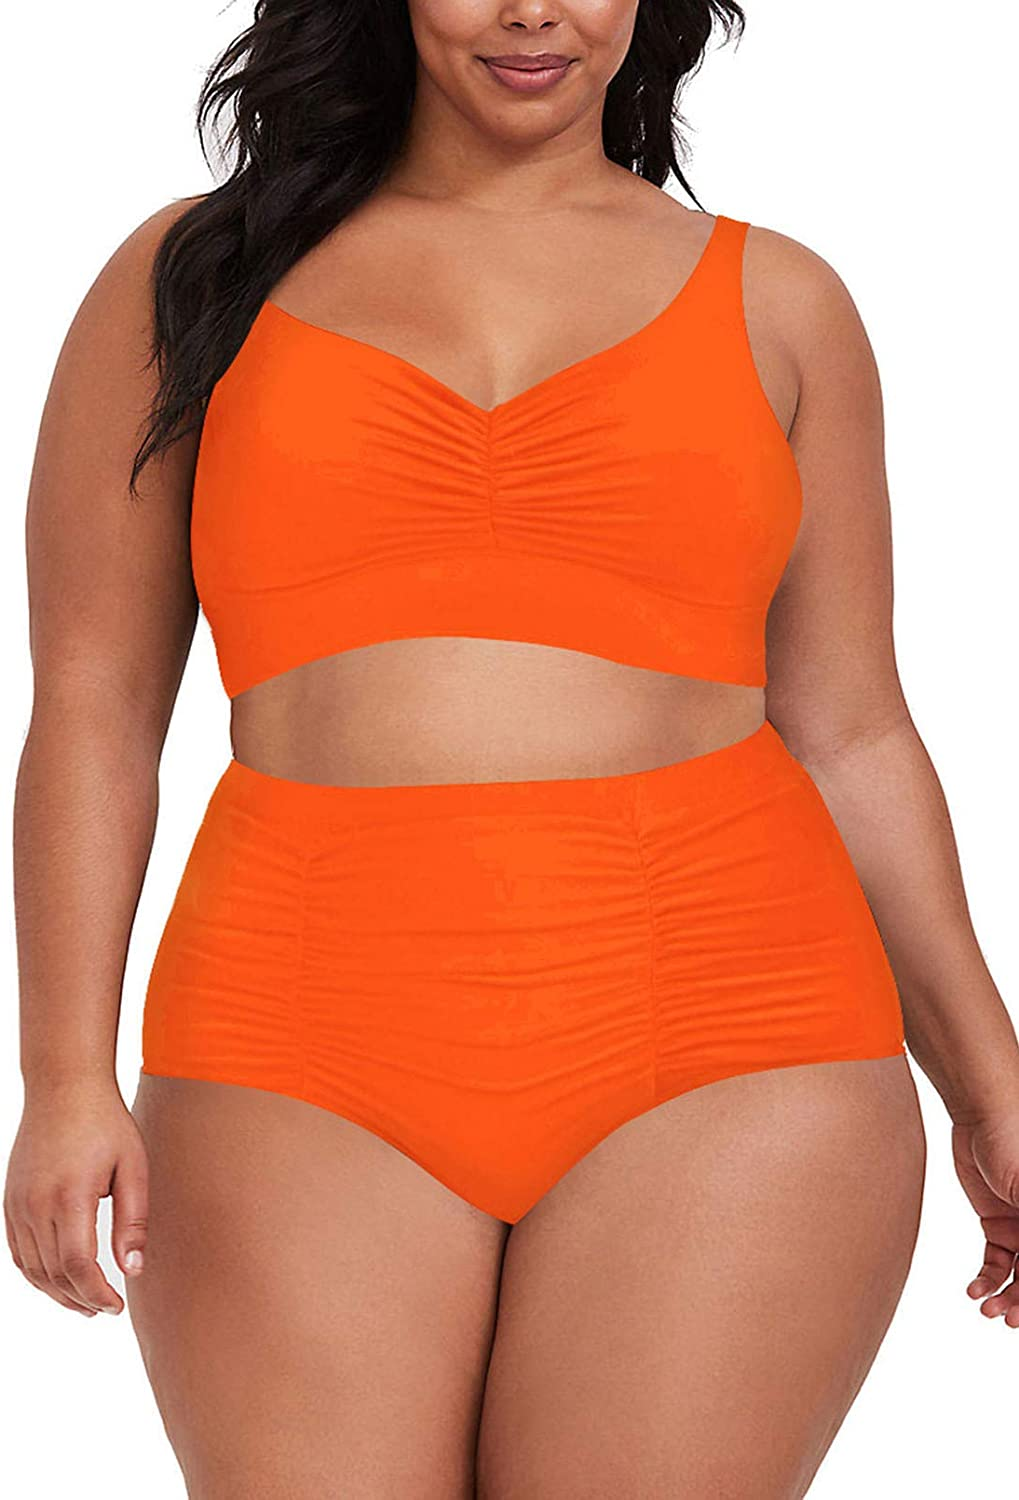 Sovoyontee Women's 2 Piece Plus Size High Waisted Swimsuit Ruched Bikini Set Bathing Suit